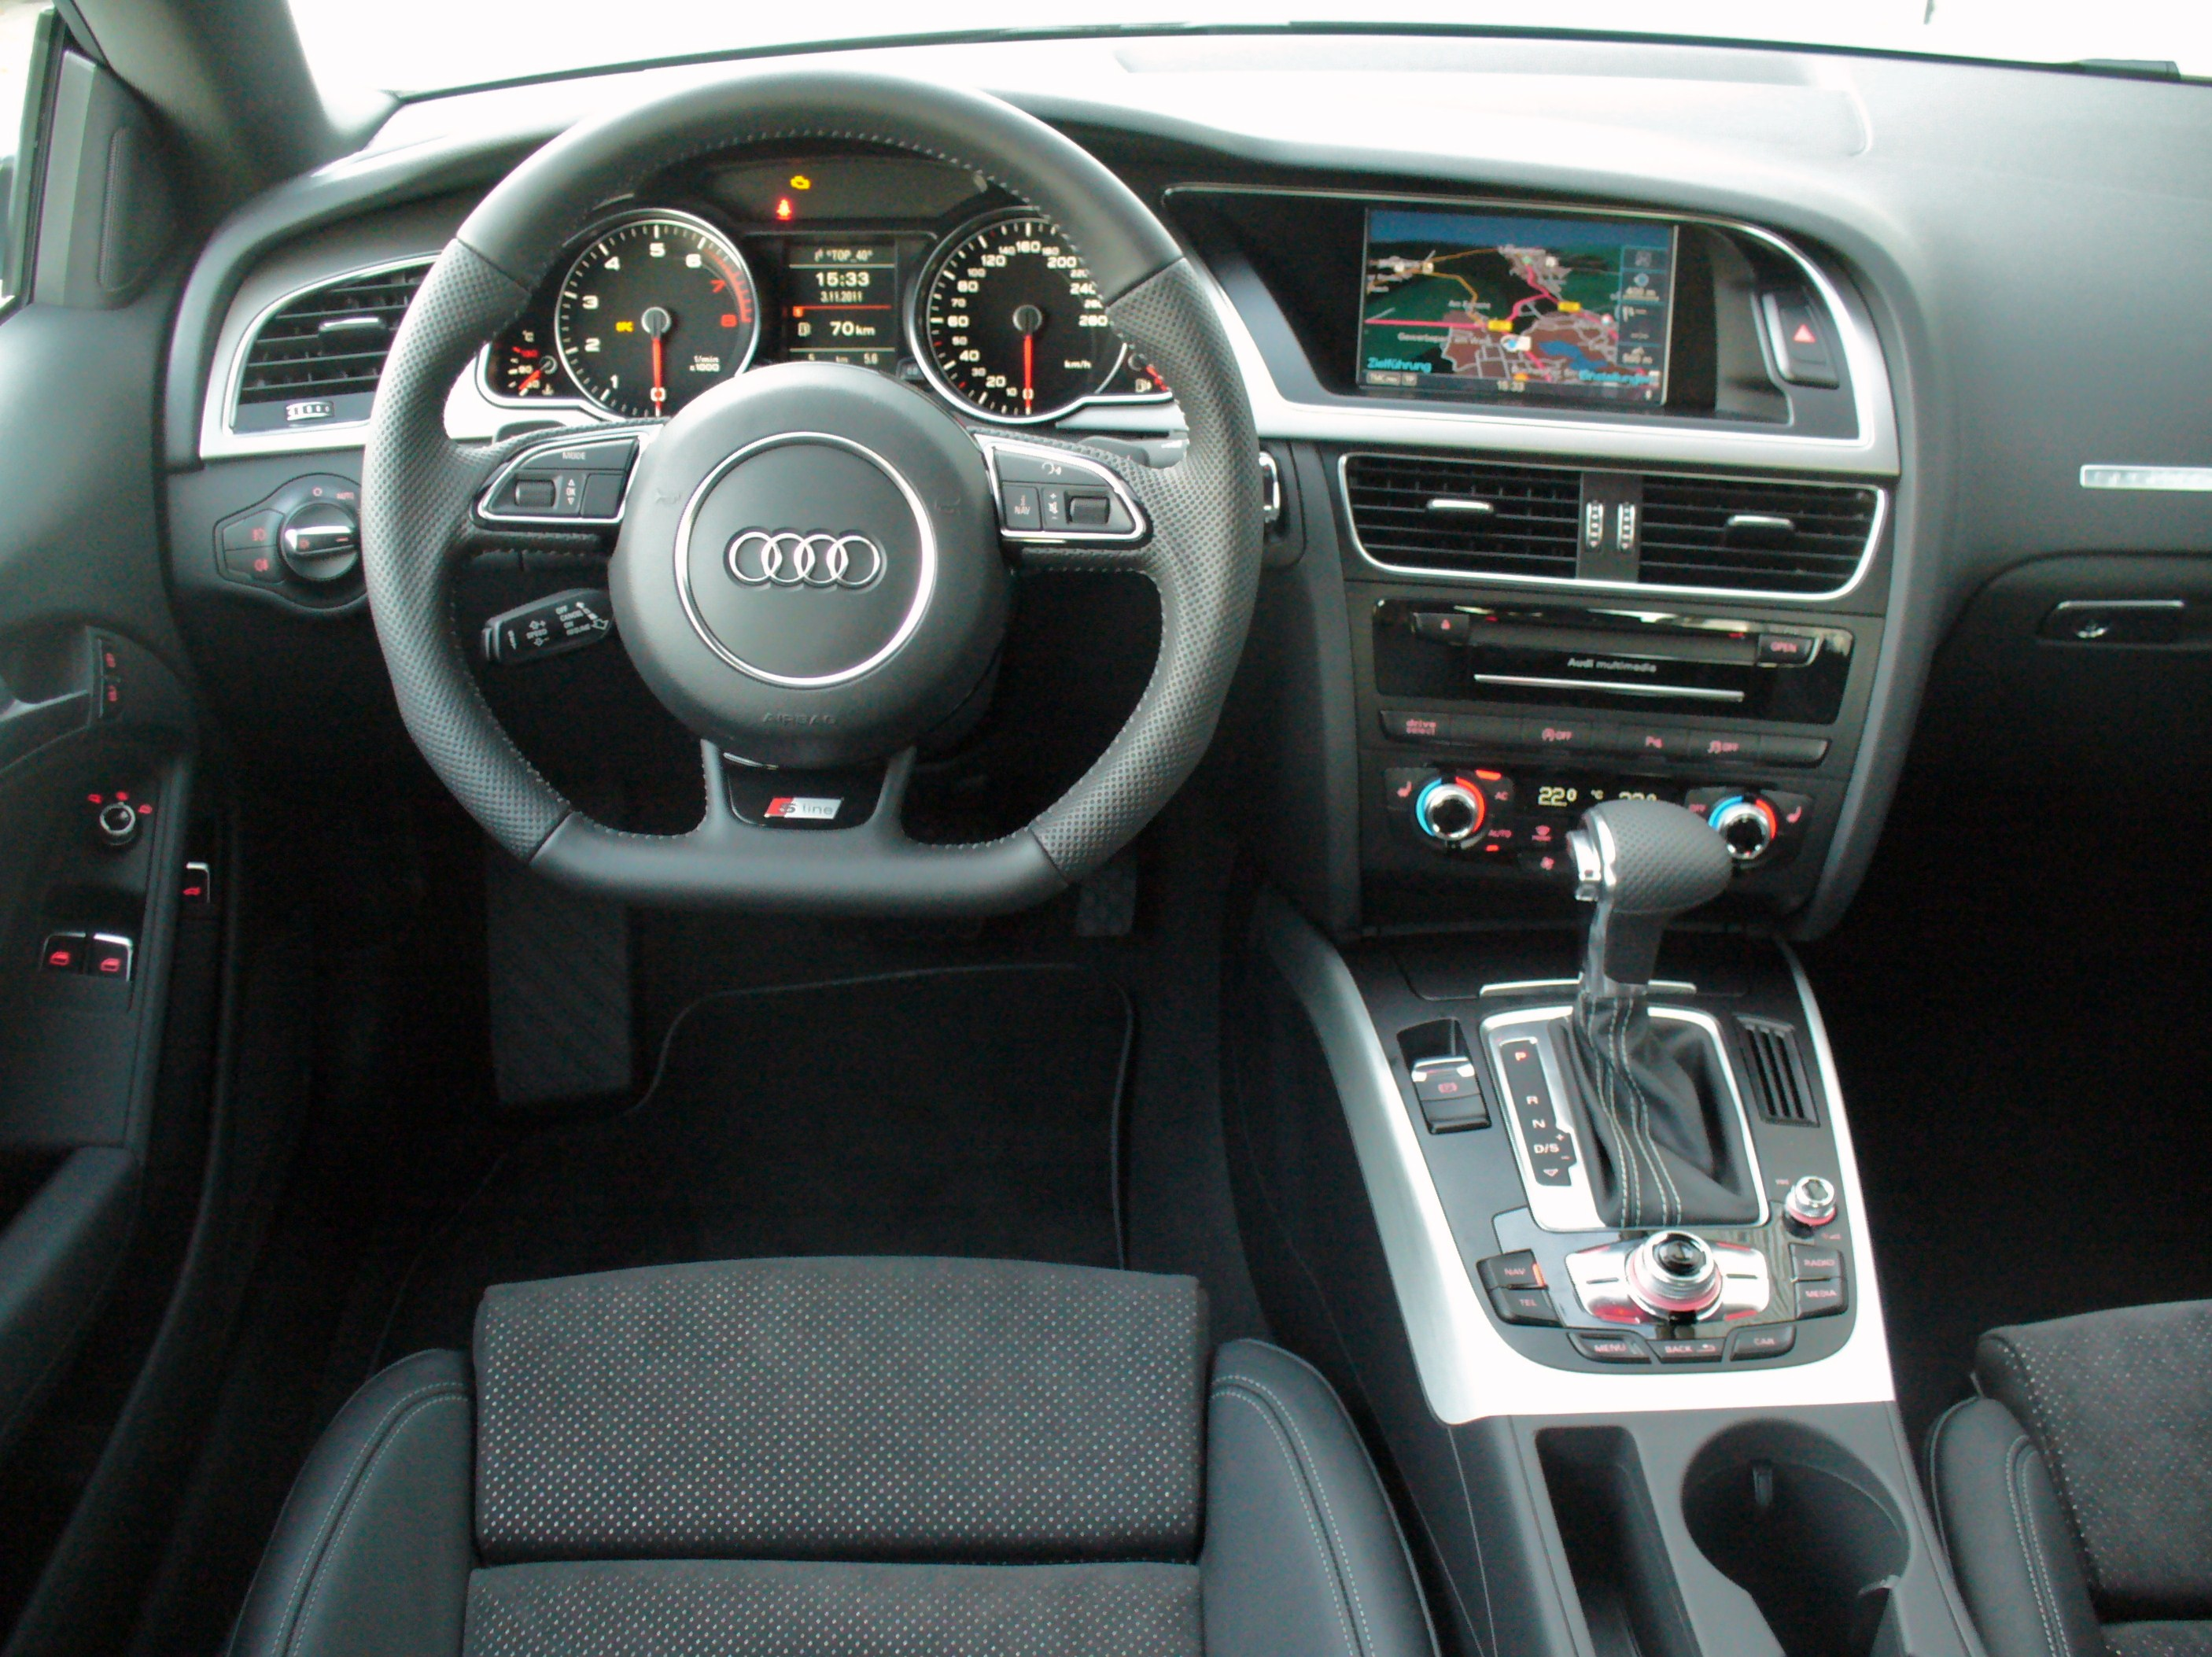 https://upload.wikimedia.org/wikipedia/commons/0/06/Audi_A5_Coup%C3%A9_2.0_TFSI_quattro_S_tronic_Gletscherwei%C3%9F_Facelift_Interieur.JPG